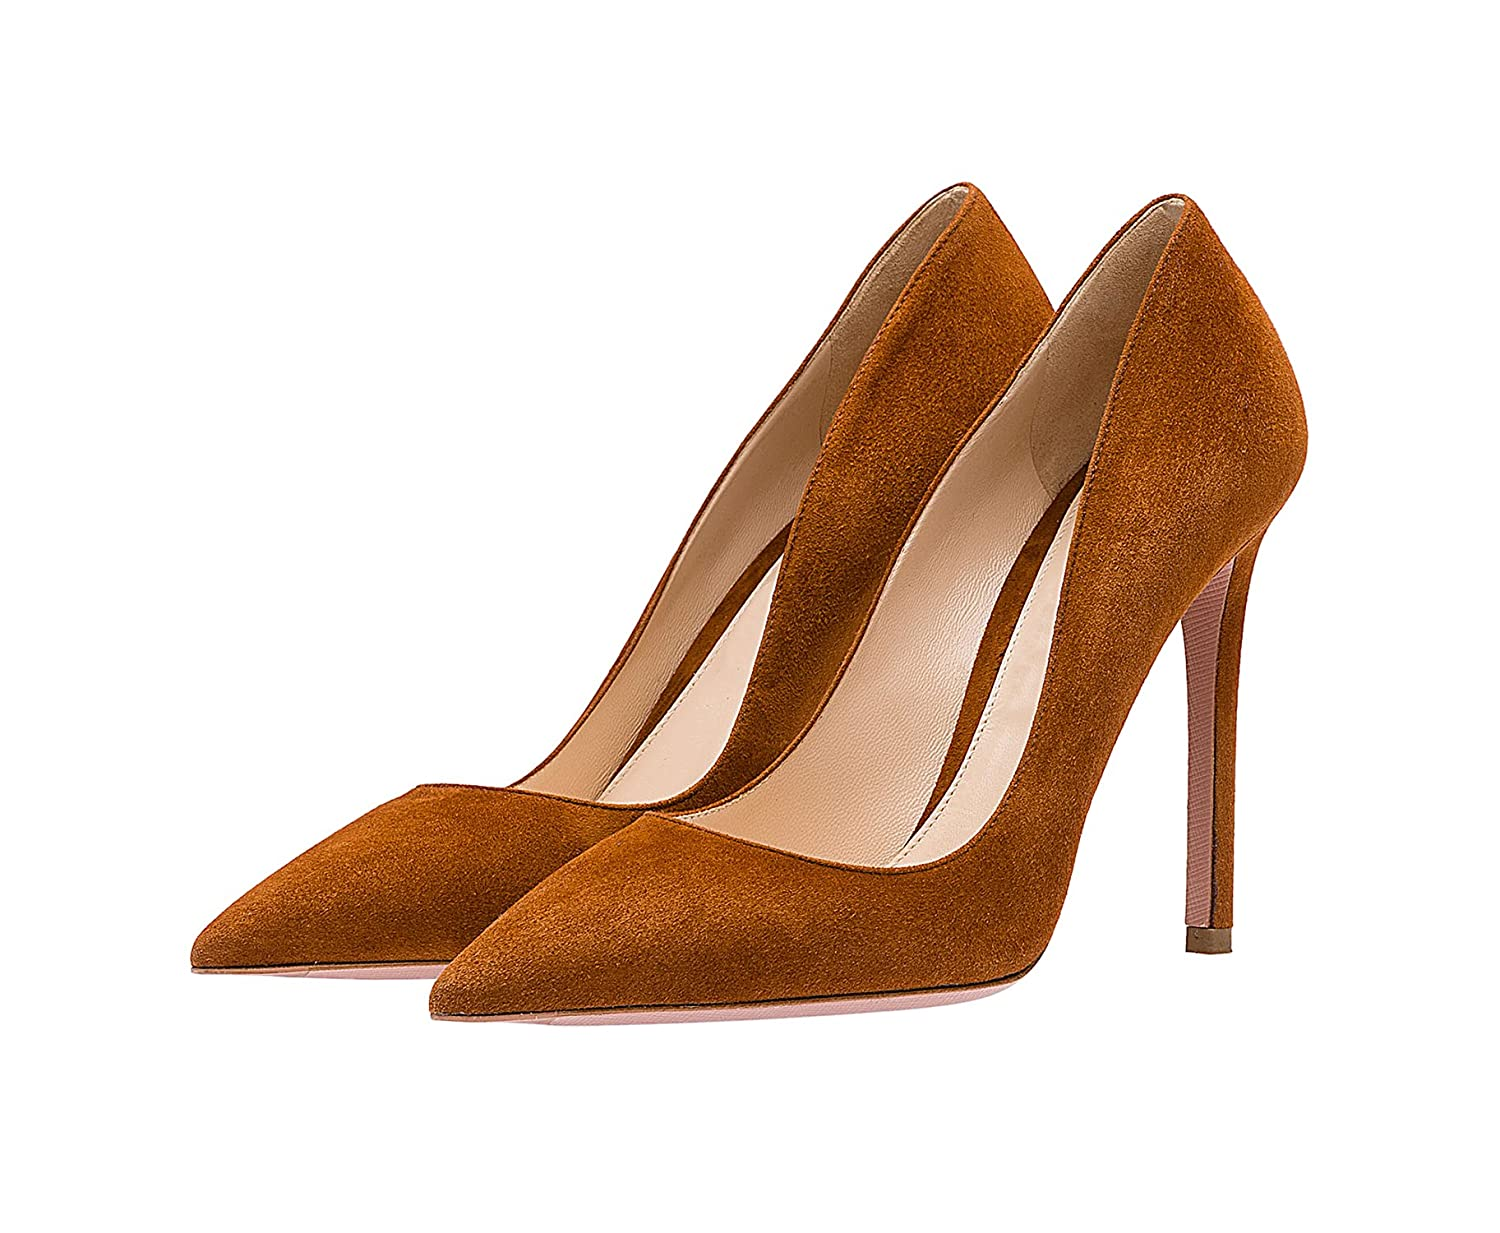 SexyPrey Women's Pointy Toe Stiletto Shoes Formal Office Evening Pumps B074M3XZ1Q 10.5 B(M) US Brown Suede